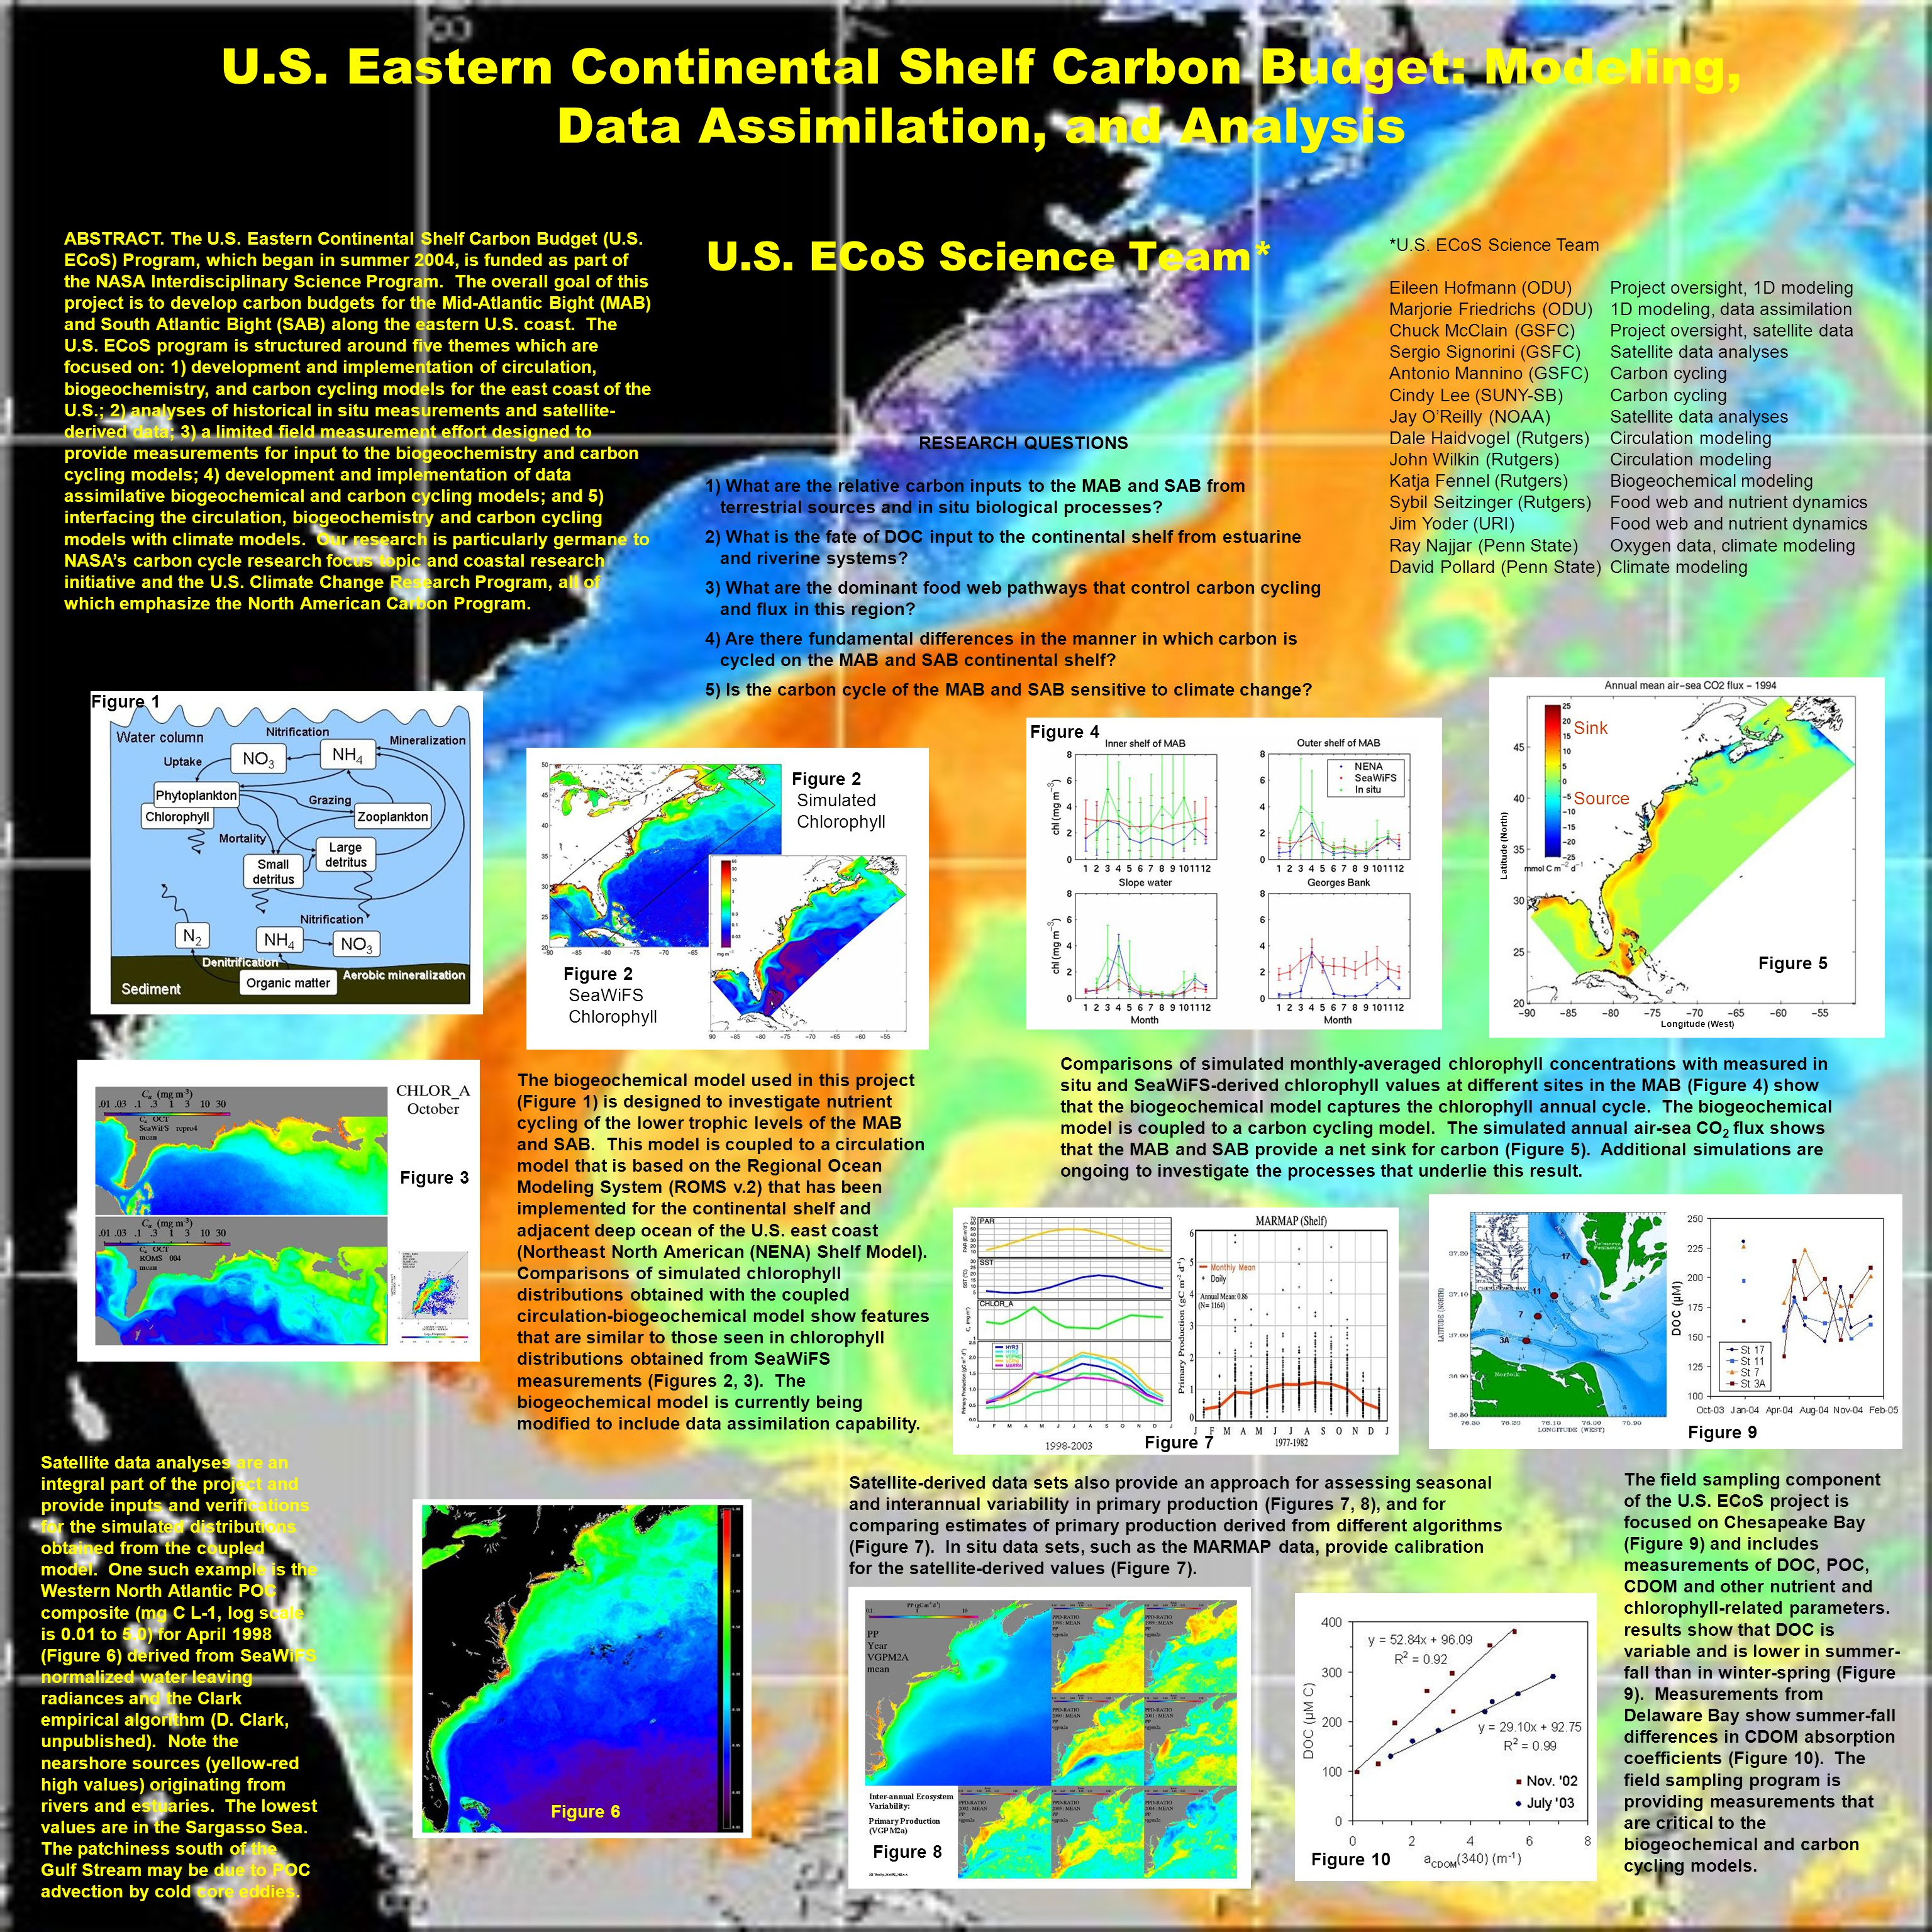 U.S. Eastern Continental Shelf Carbon Budget: Modeling, Data Assimilation, and Analysis U.S.